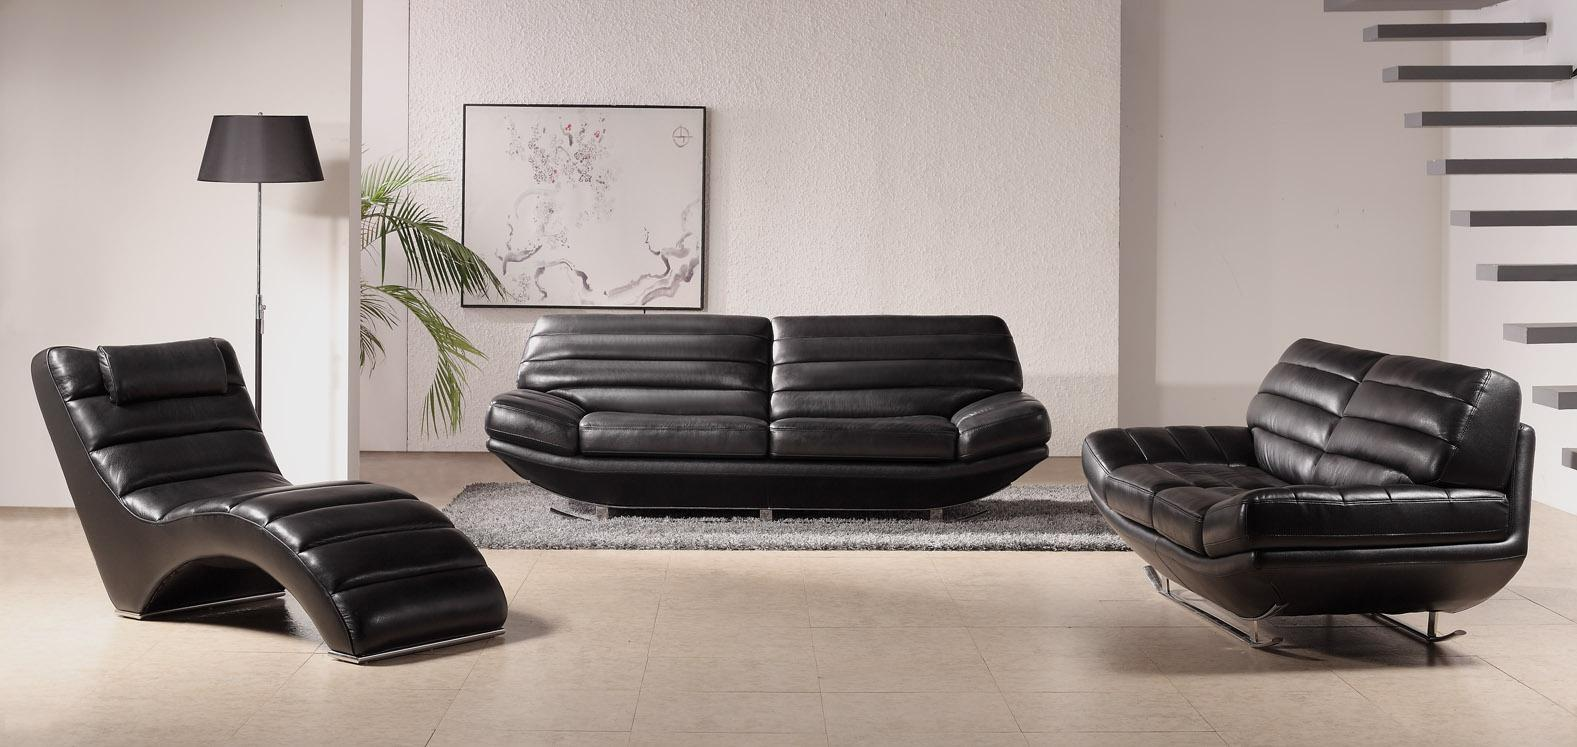 Know about types of couches and sofas my decorative for Modern living room chairs sale